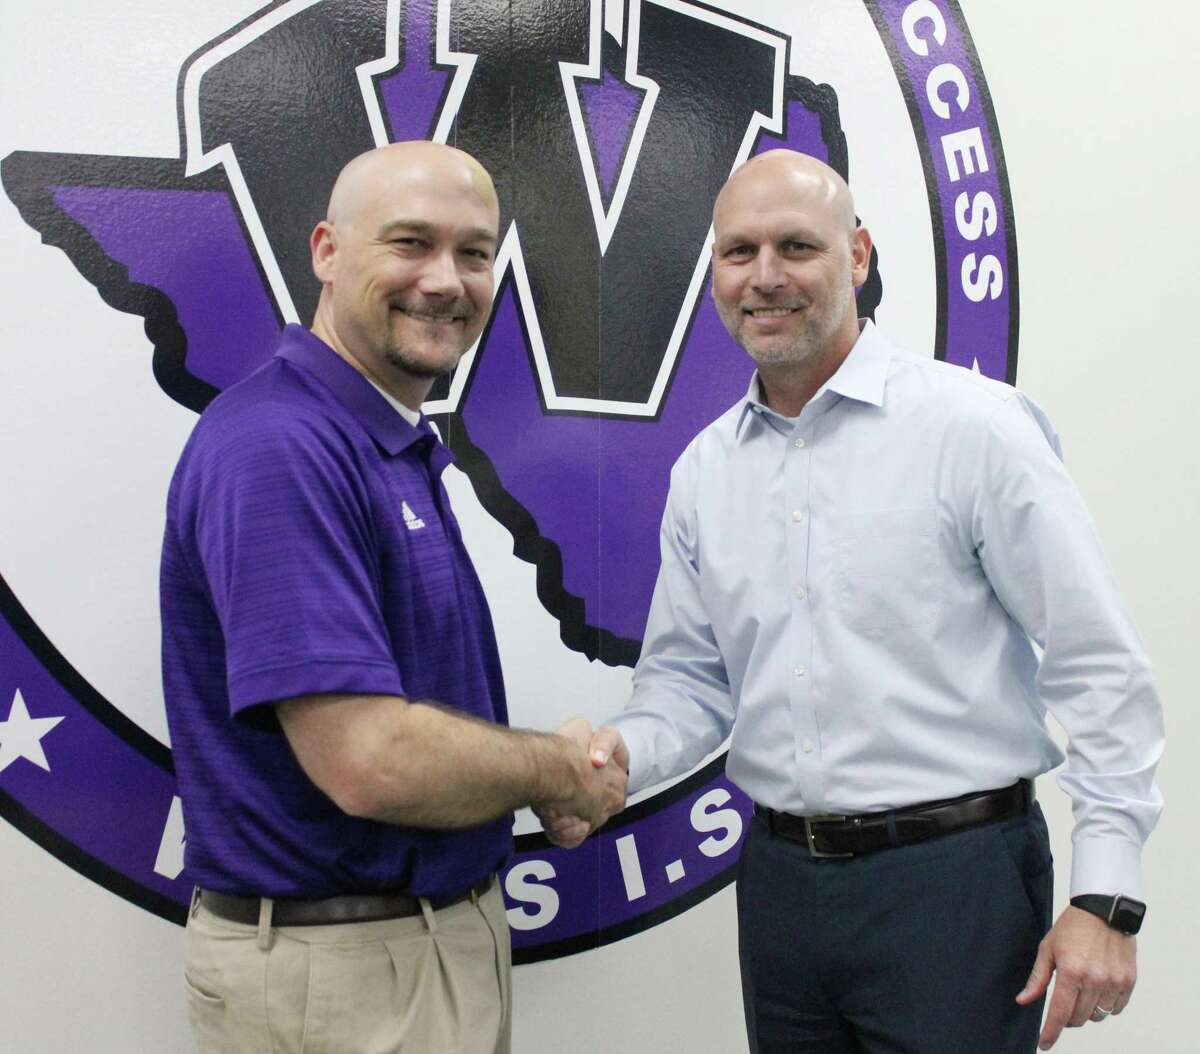 Willis ISD Superintendent Tim Harkrider shakes hands with Dr. Brian Greeney when the district named him as the new assistant superintendent in 2017.